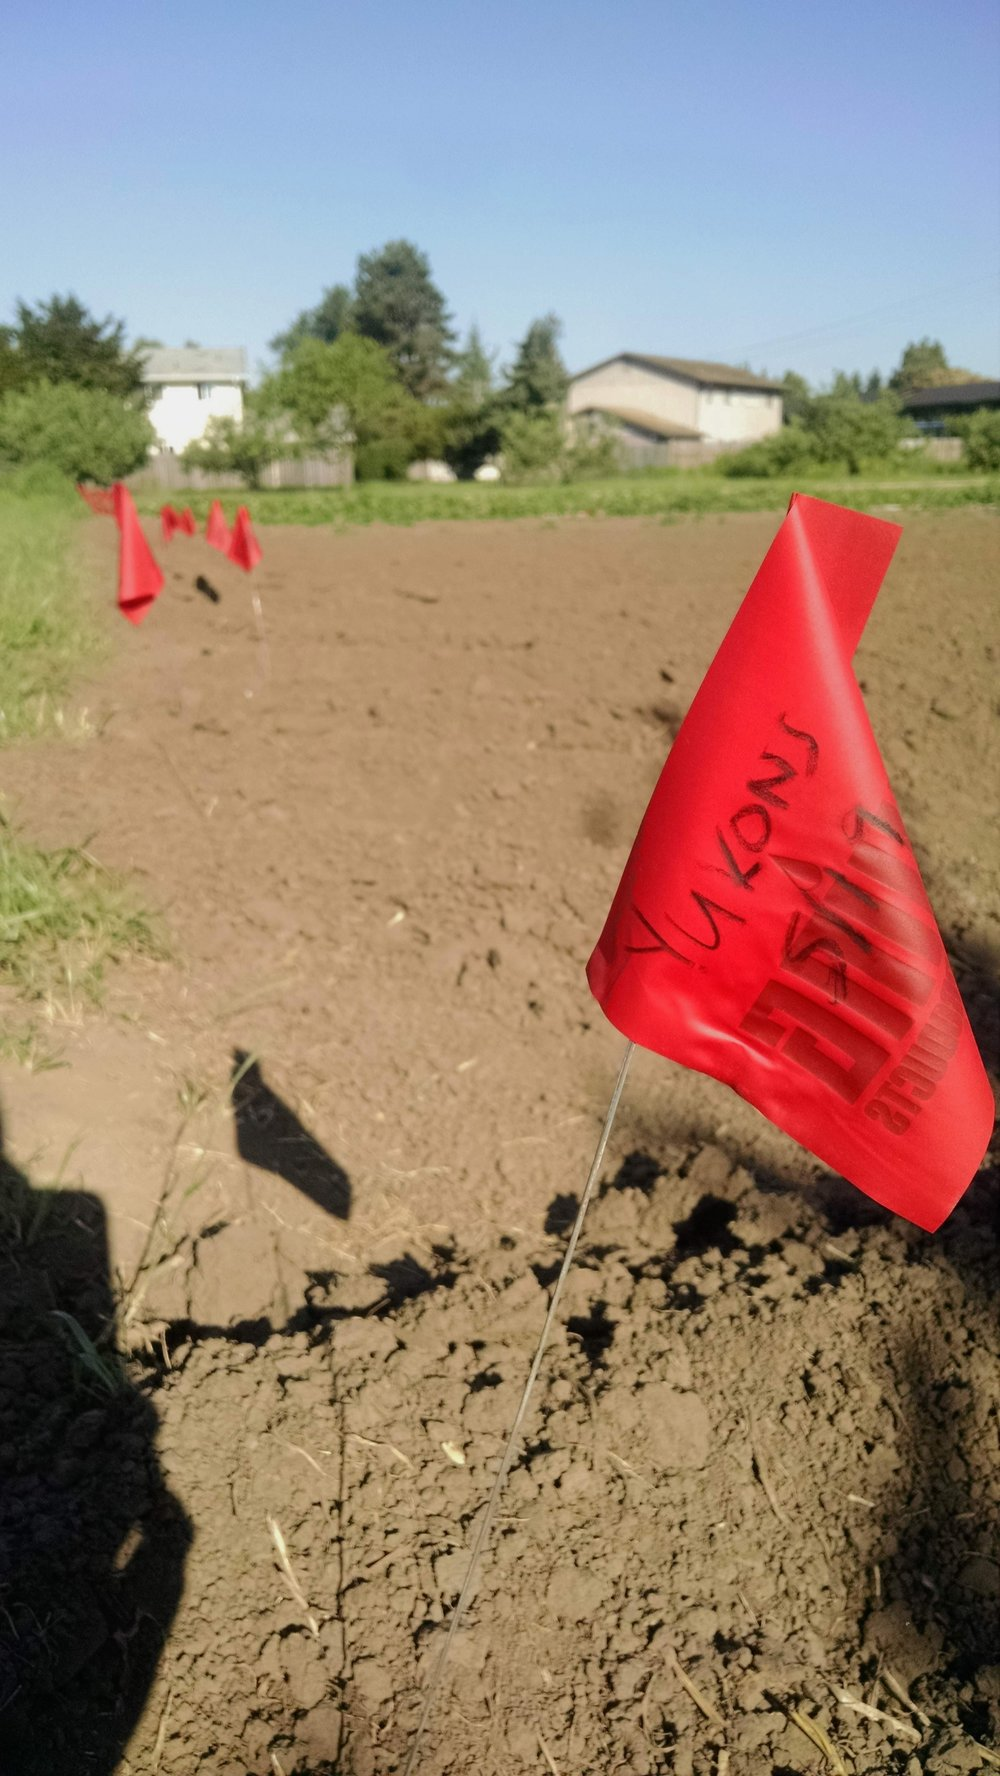 A cavalcade of red flags to mark the potato field, planted on Saturday by the new youth farmers